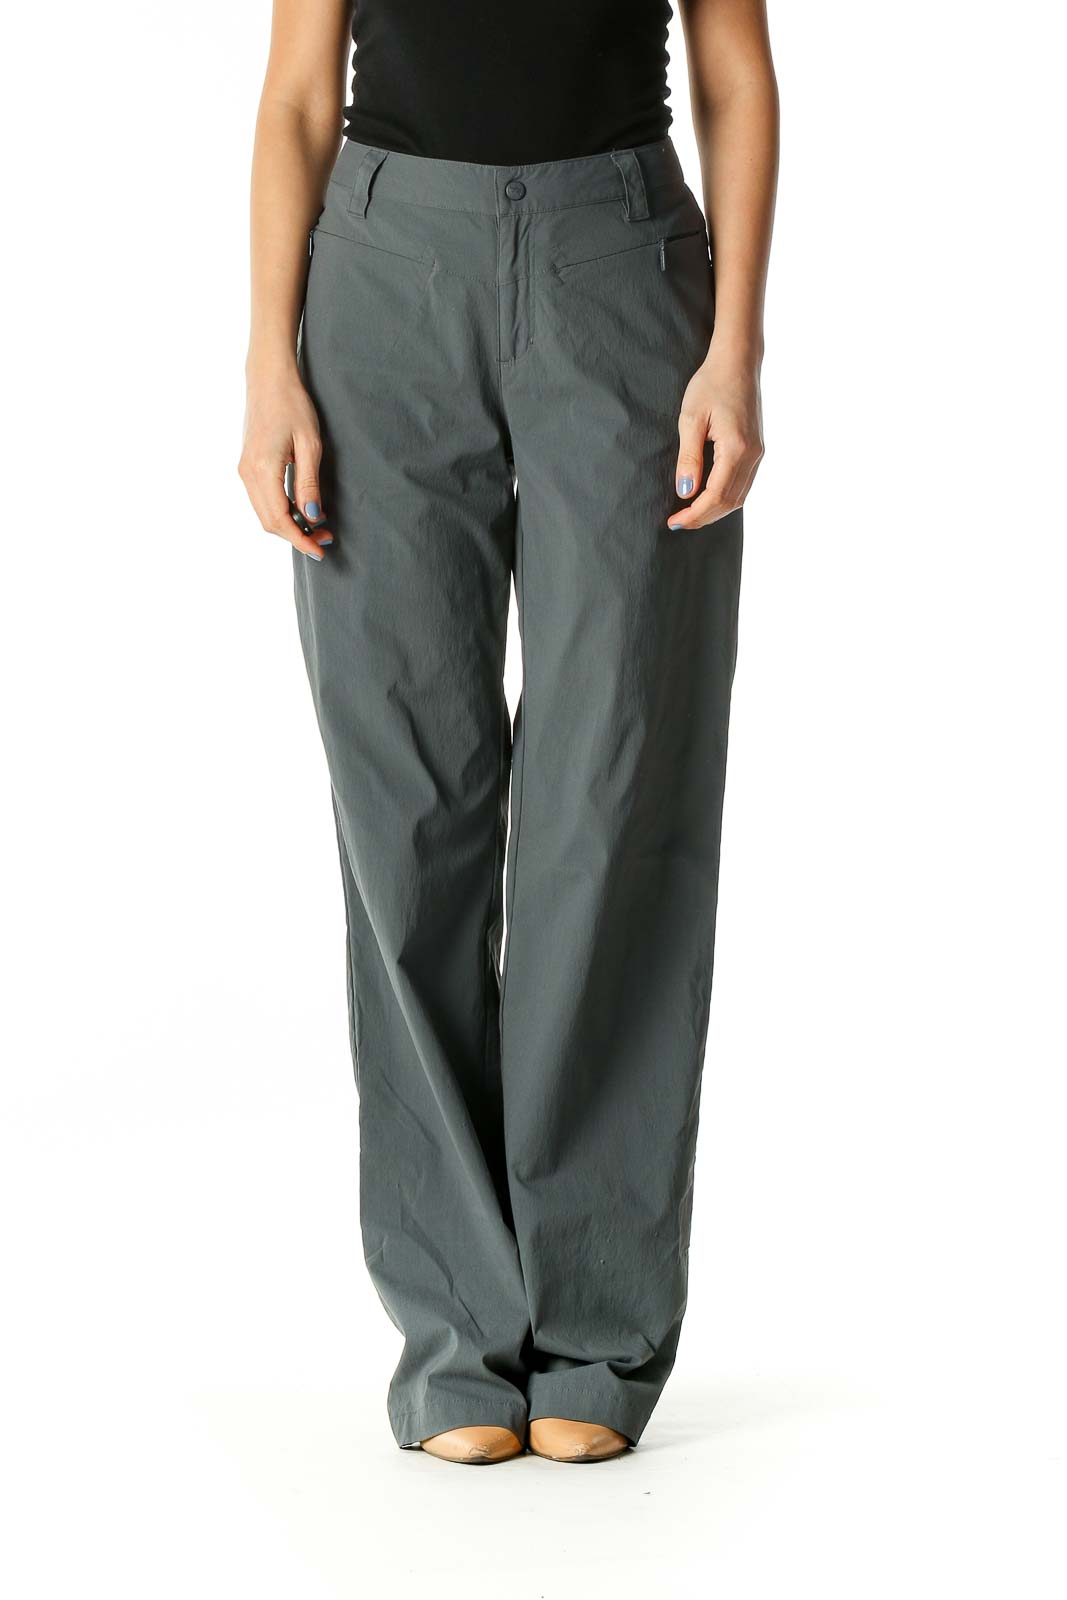 Gray Stretch Straight Leg Outdoor Pants Front